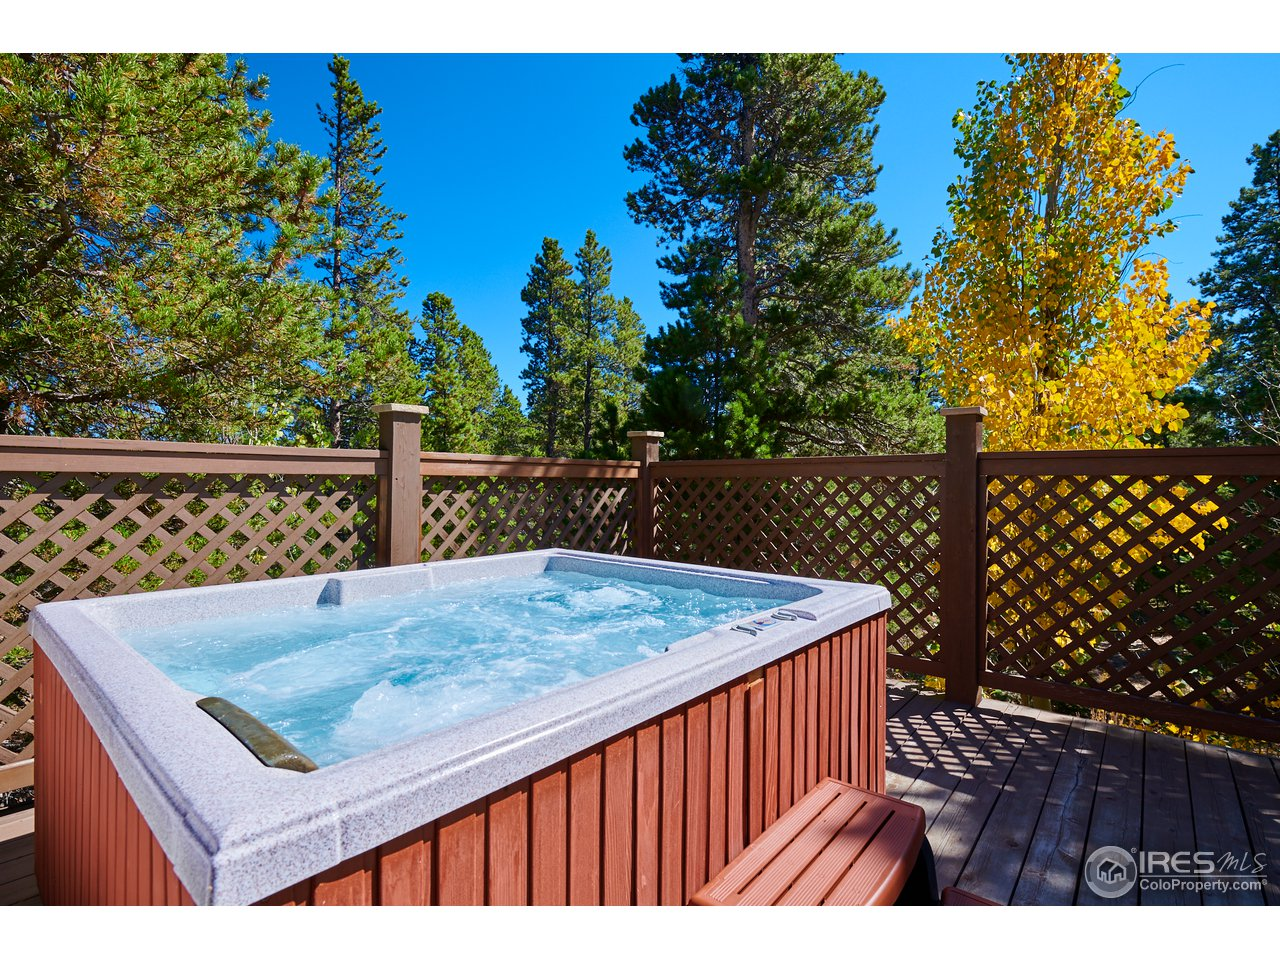 Hot Tub off of Deck